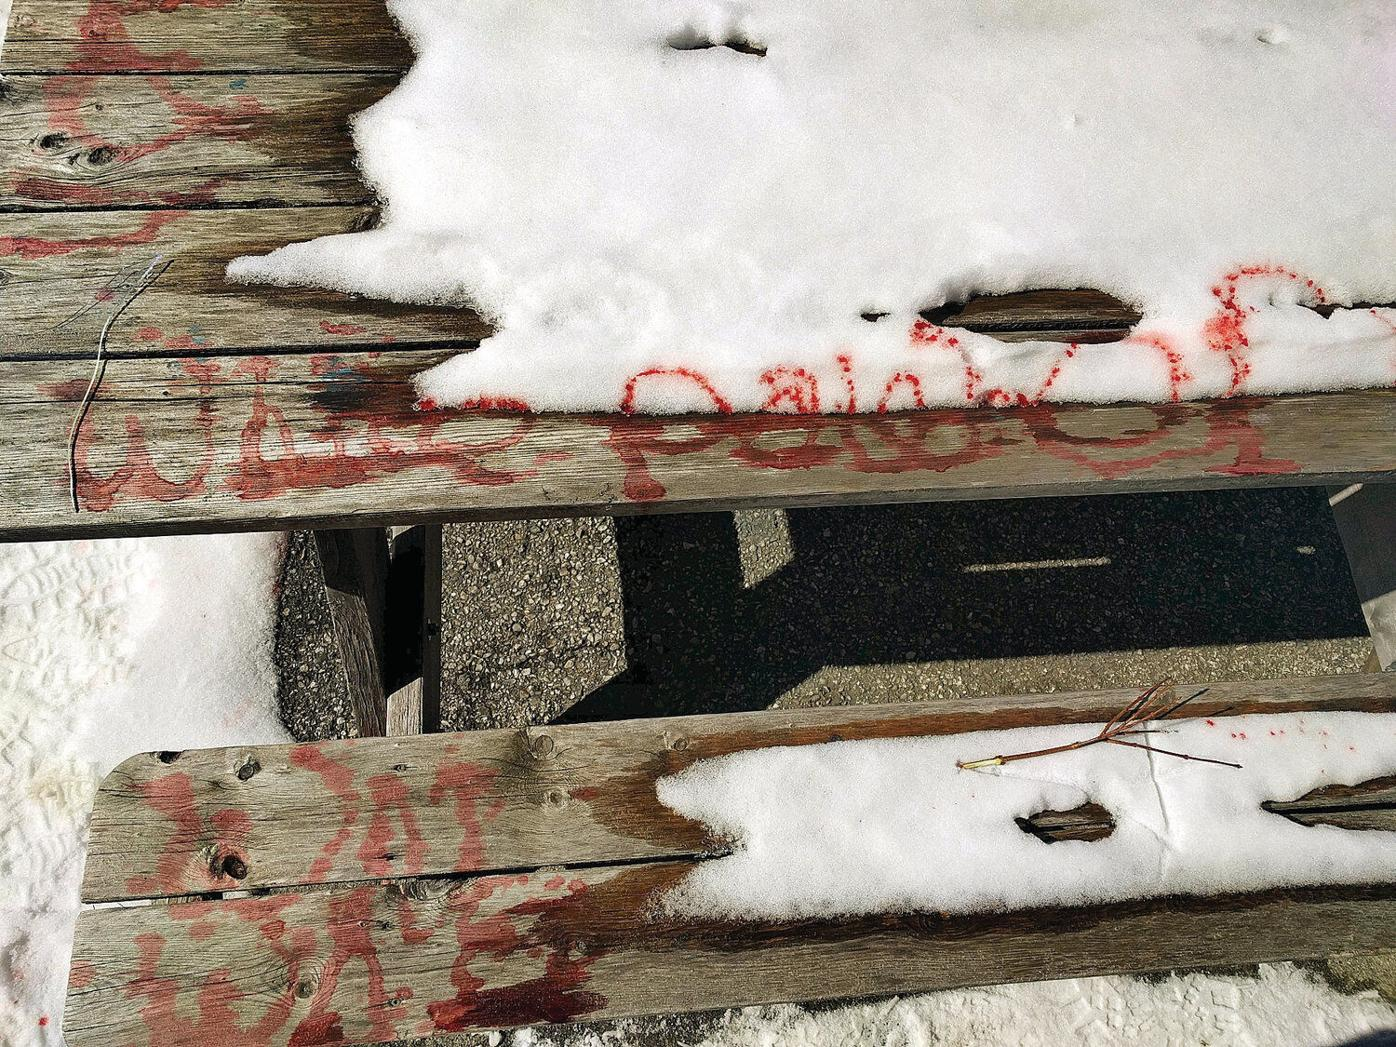 Vandalism, racist graffiti hit Oldcastle